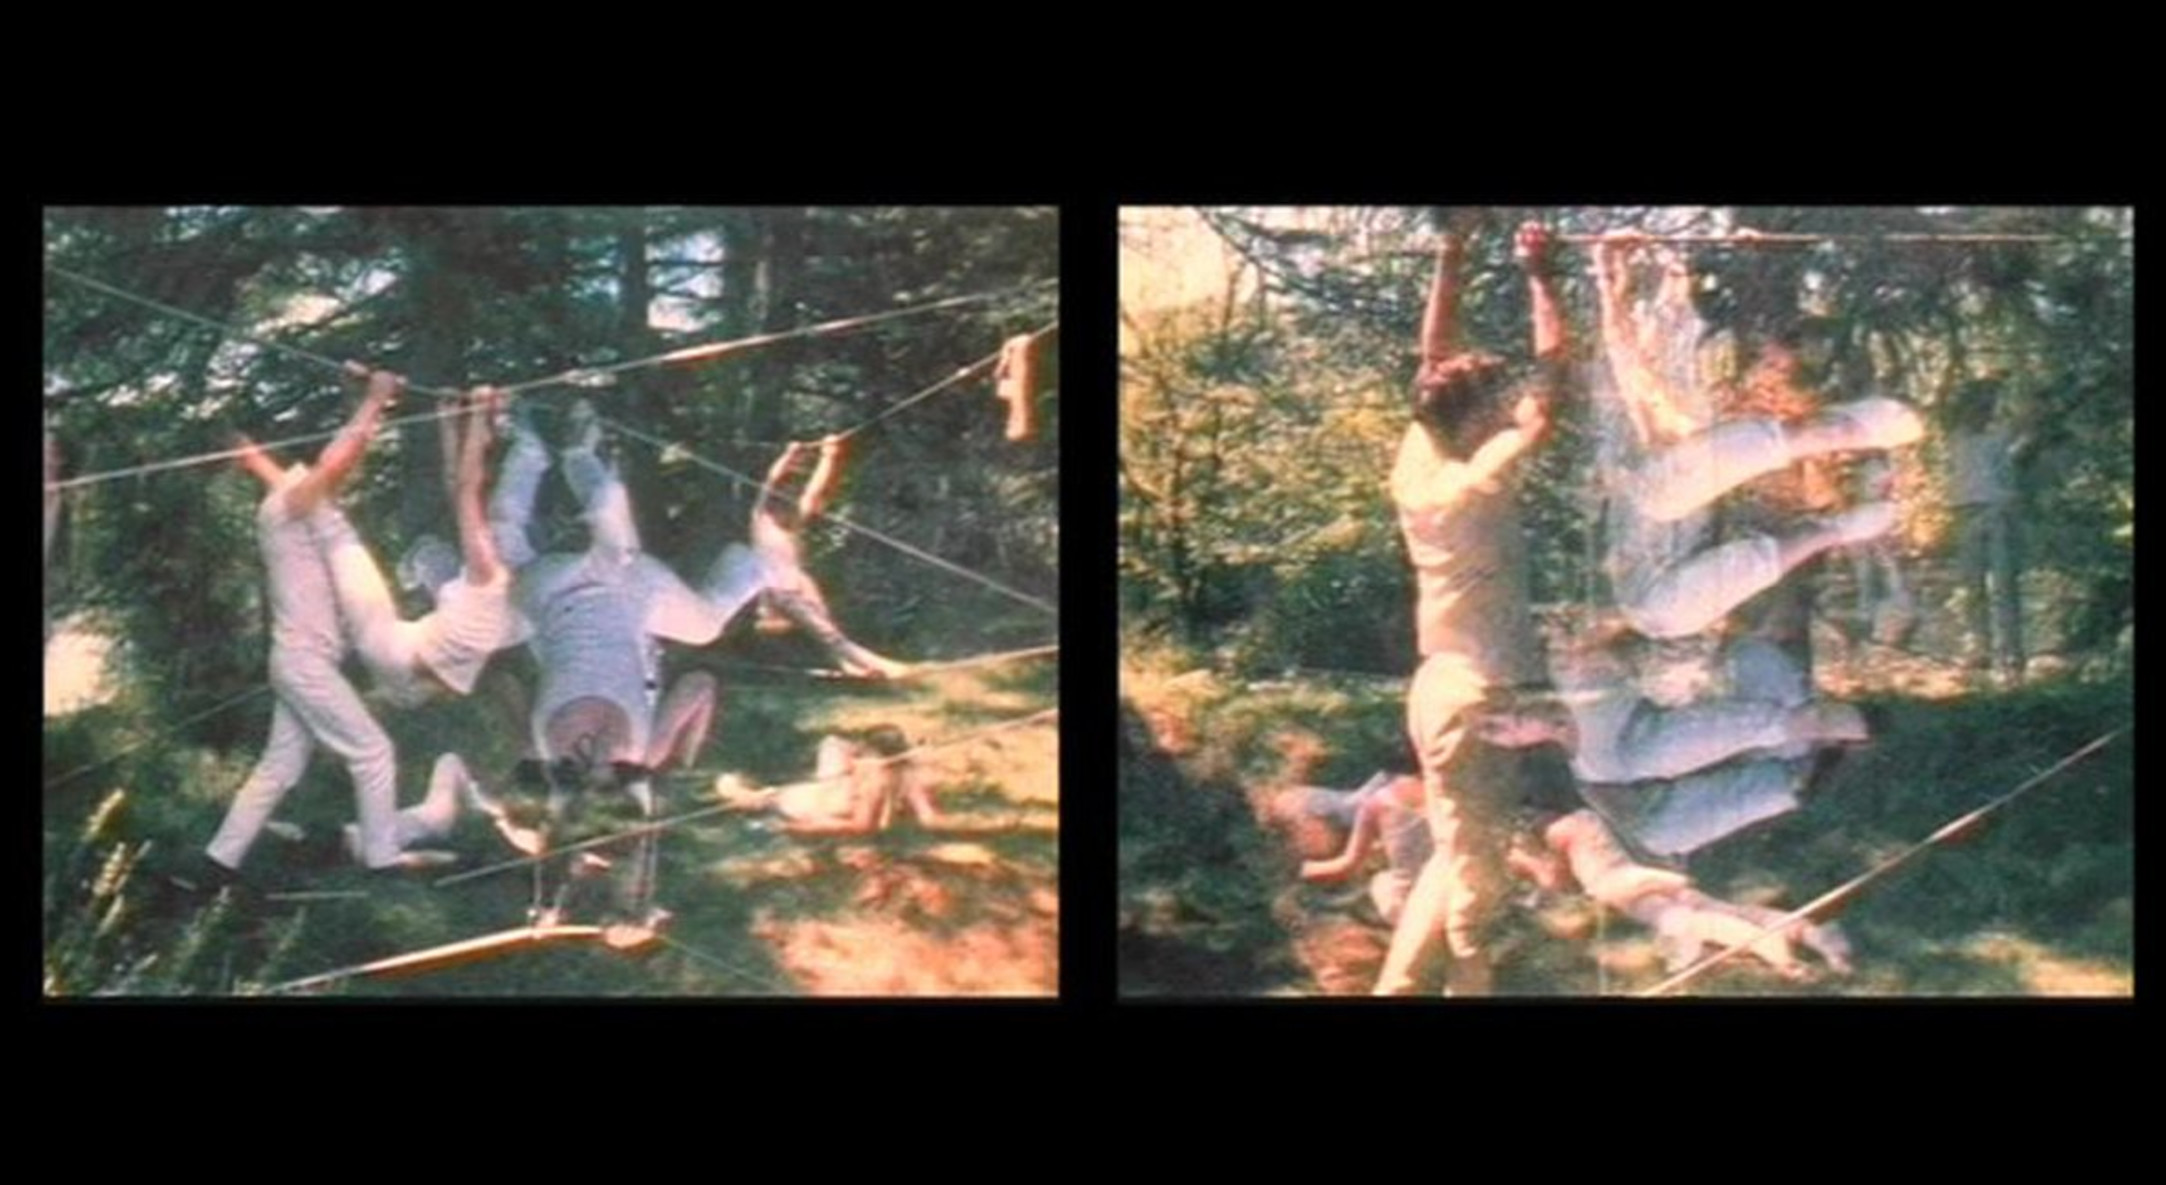 Film still of Carolee Schneemann, Water Light/Water Needle (Lake Mah Wah, NJ), 1966, 11:13 min, colour, sound, 16 mm film on video